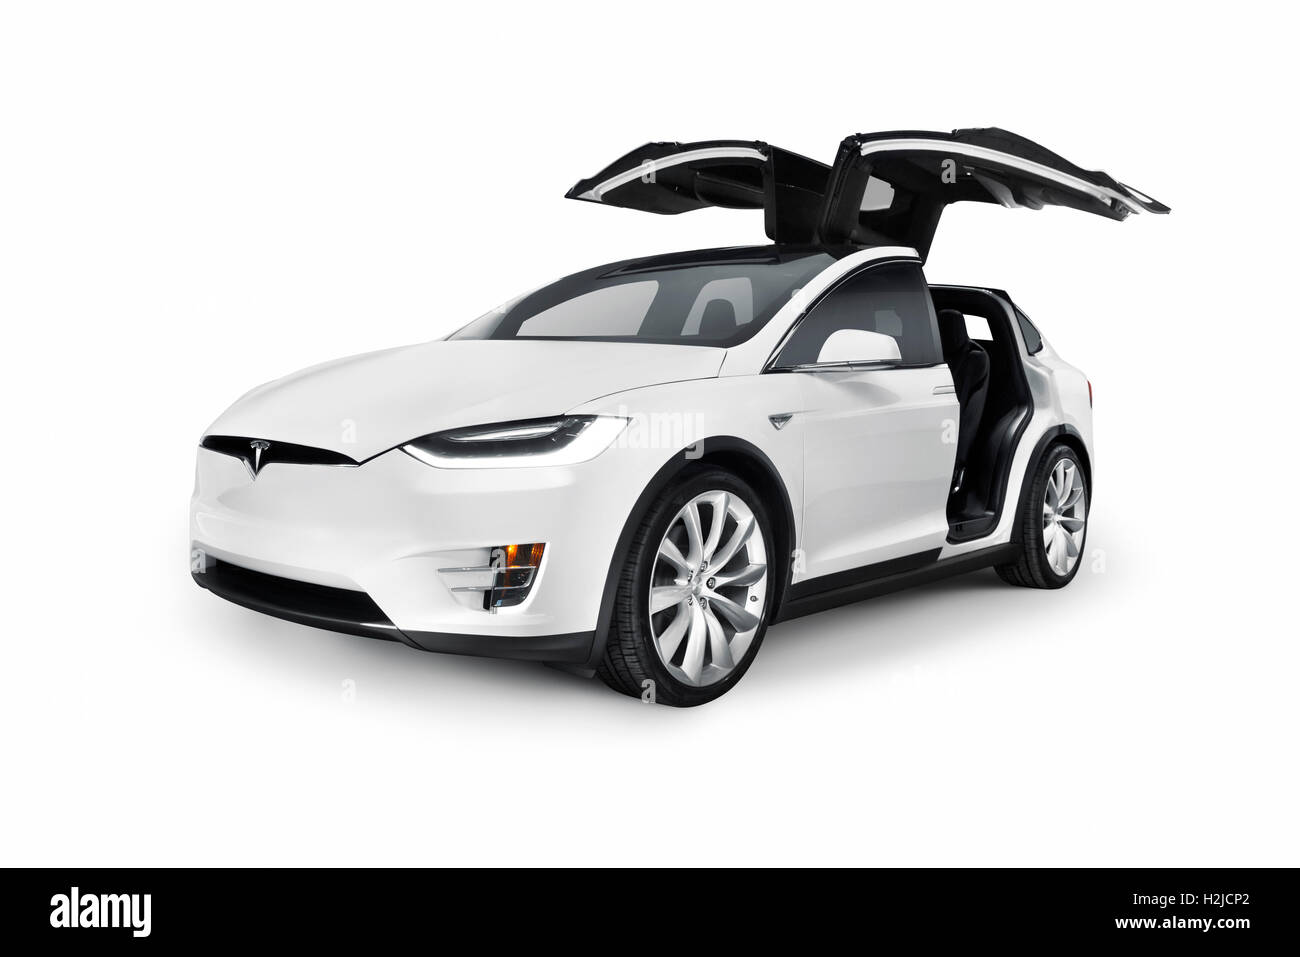 White 2017 Tesla Model X luxury SUV electric car with open falcon wing doors isolated on white background  sc 1 st  Alamy & White 2017 Tesla Model X luxury SUV electric car with open falcon ...